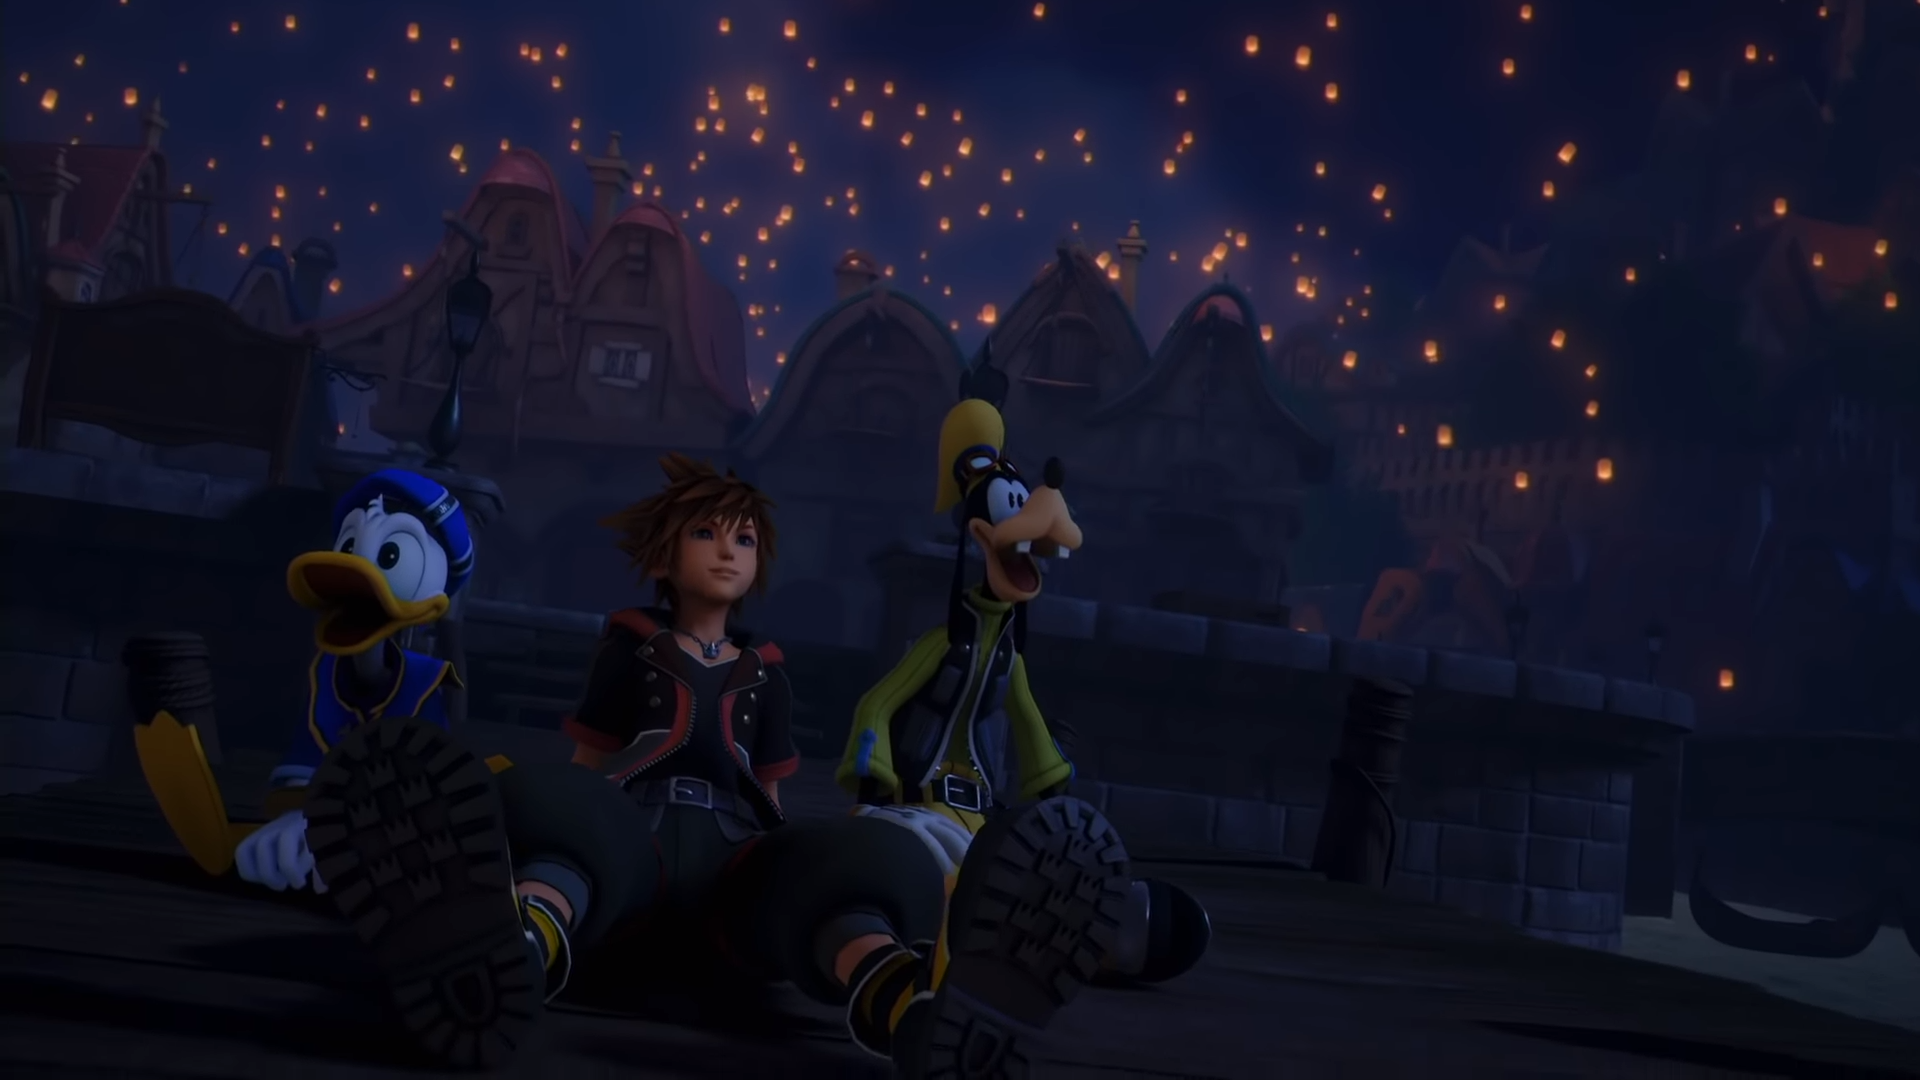 New Kingdom Hearts 3 Trailer Shown Off At X018 Mxdwn Games